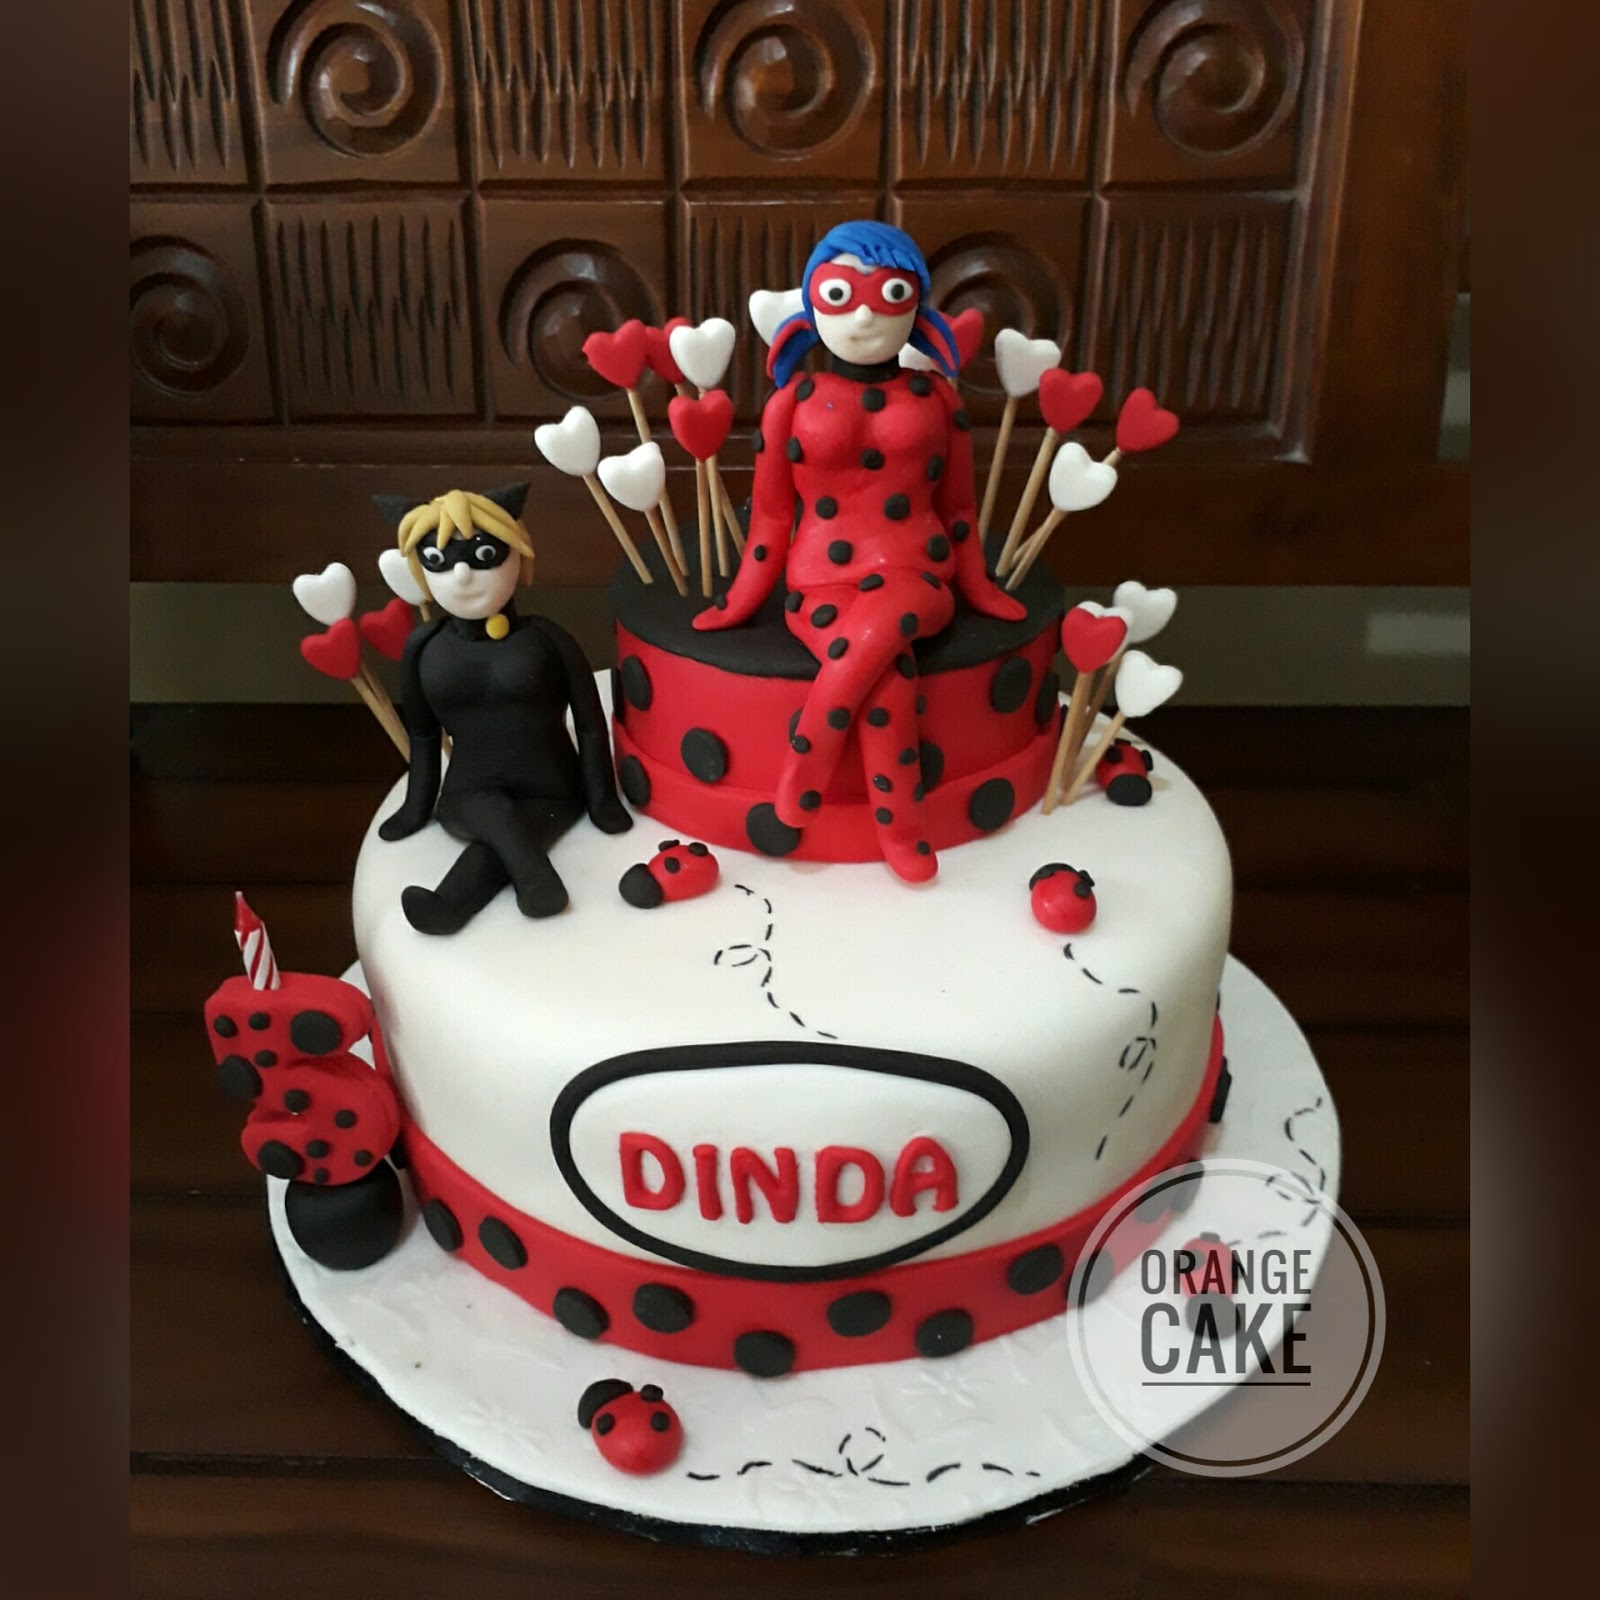 orange cake miraculous ladybug birthday cake for dinda